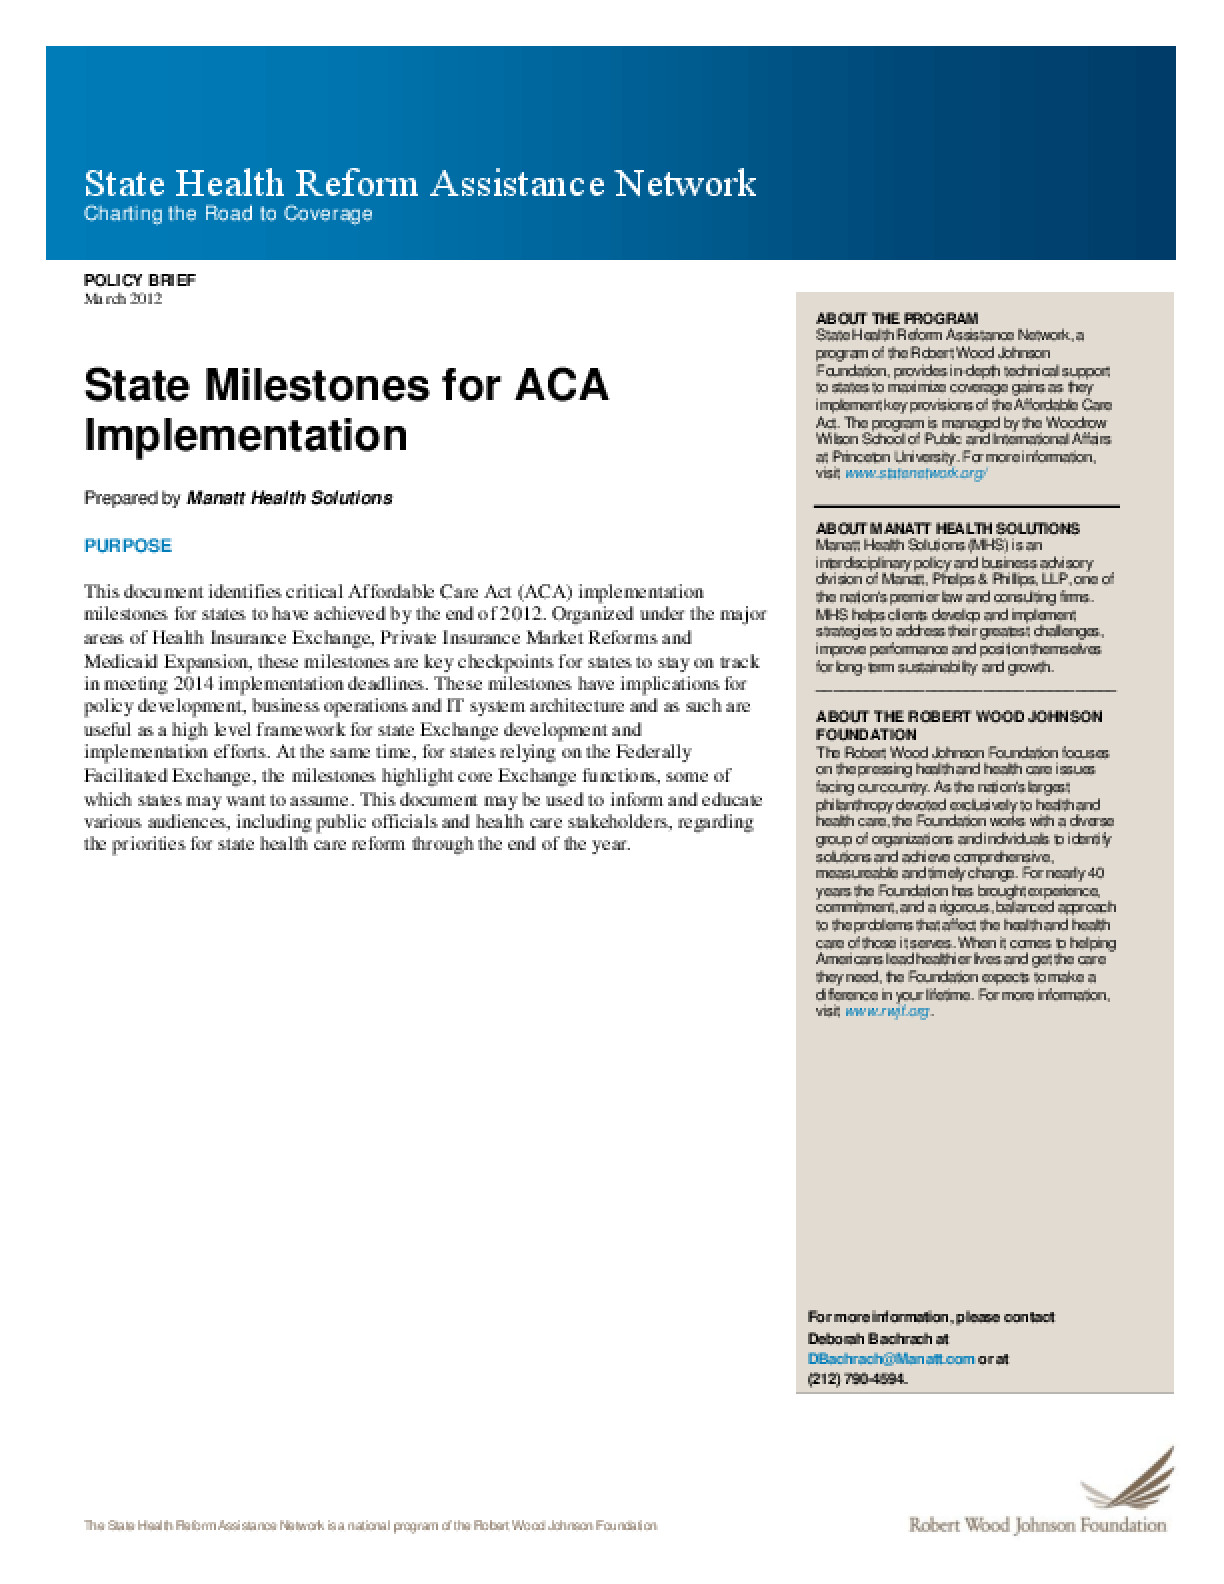 State Milestones for ACA Implementation